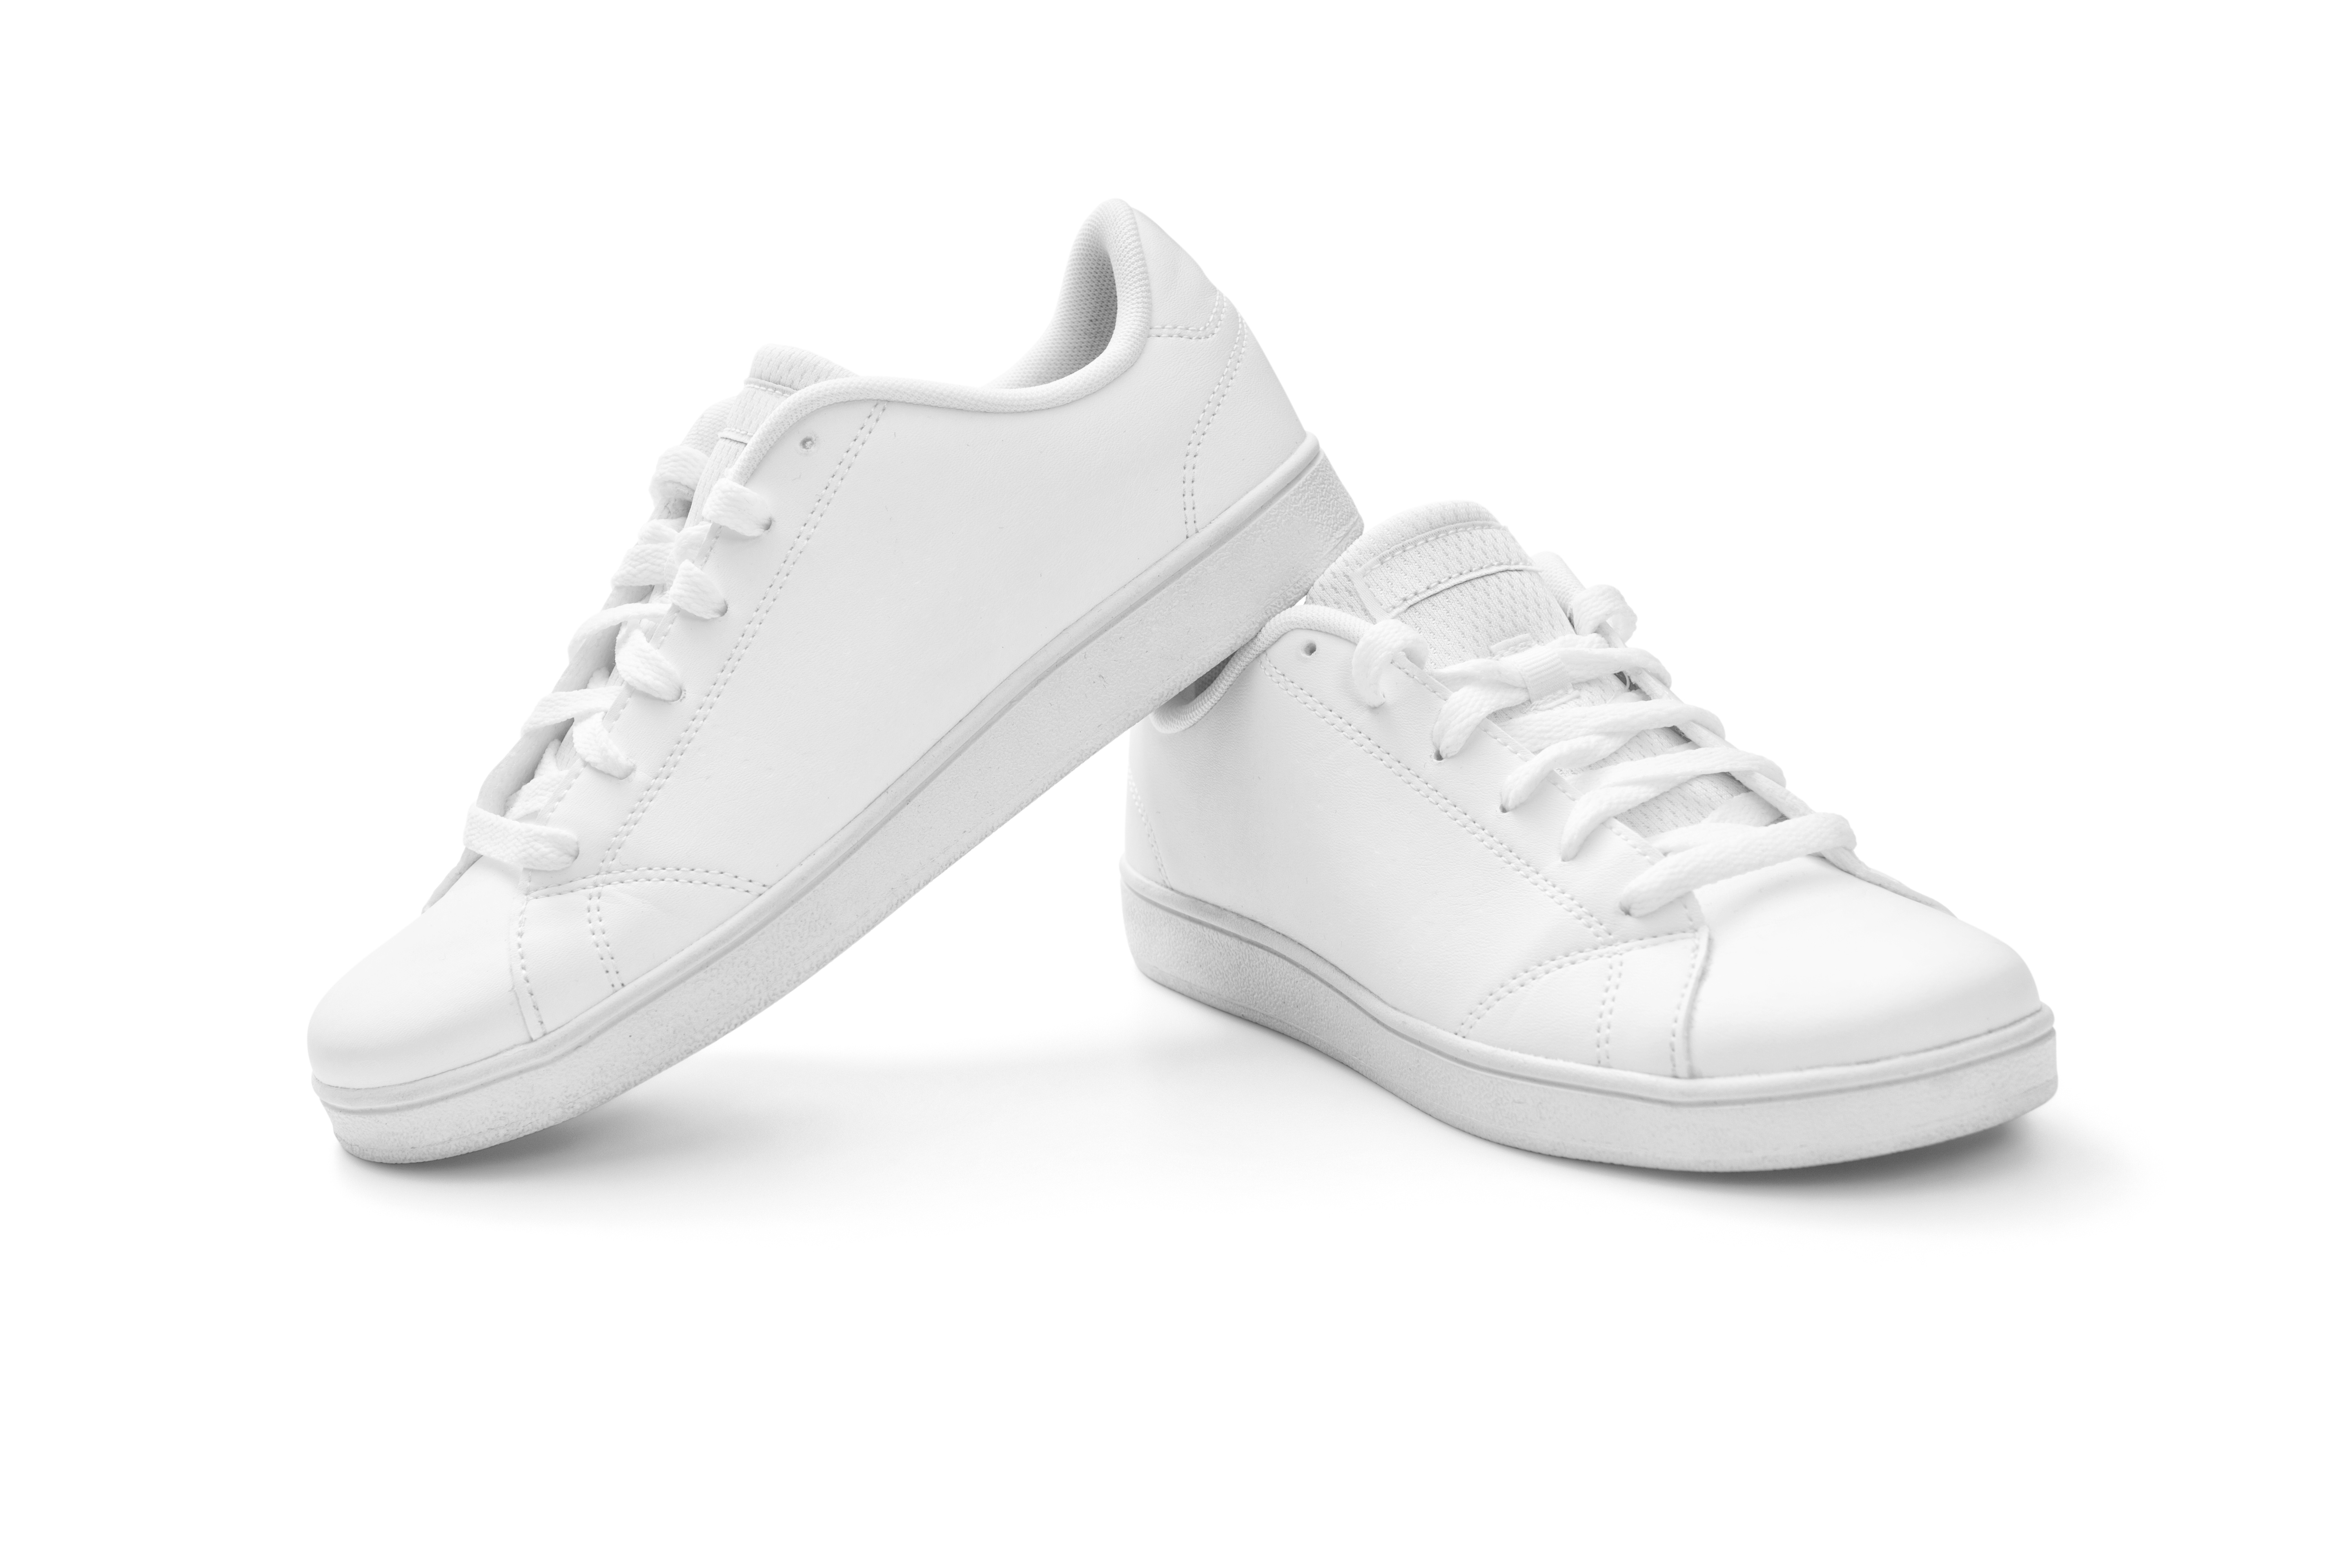 Full white sneakers on white background, including clipping path